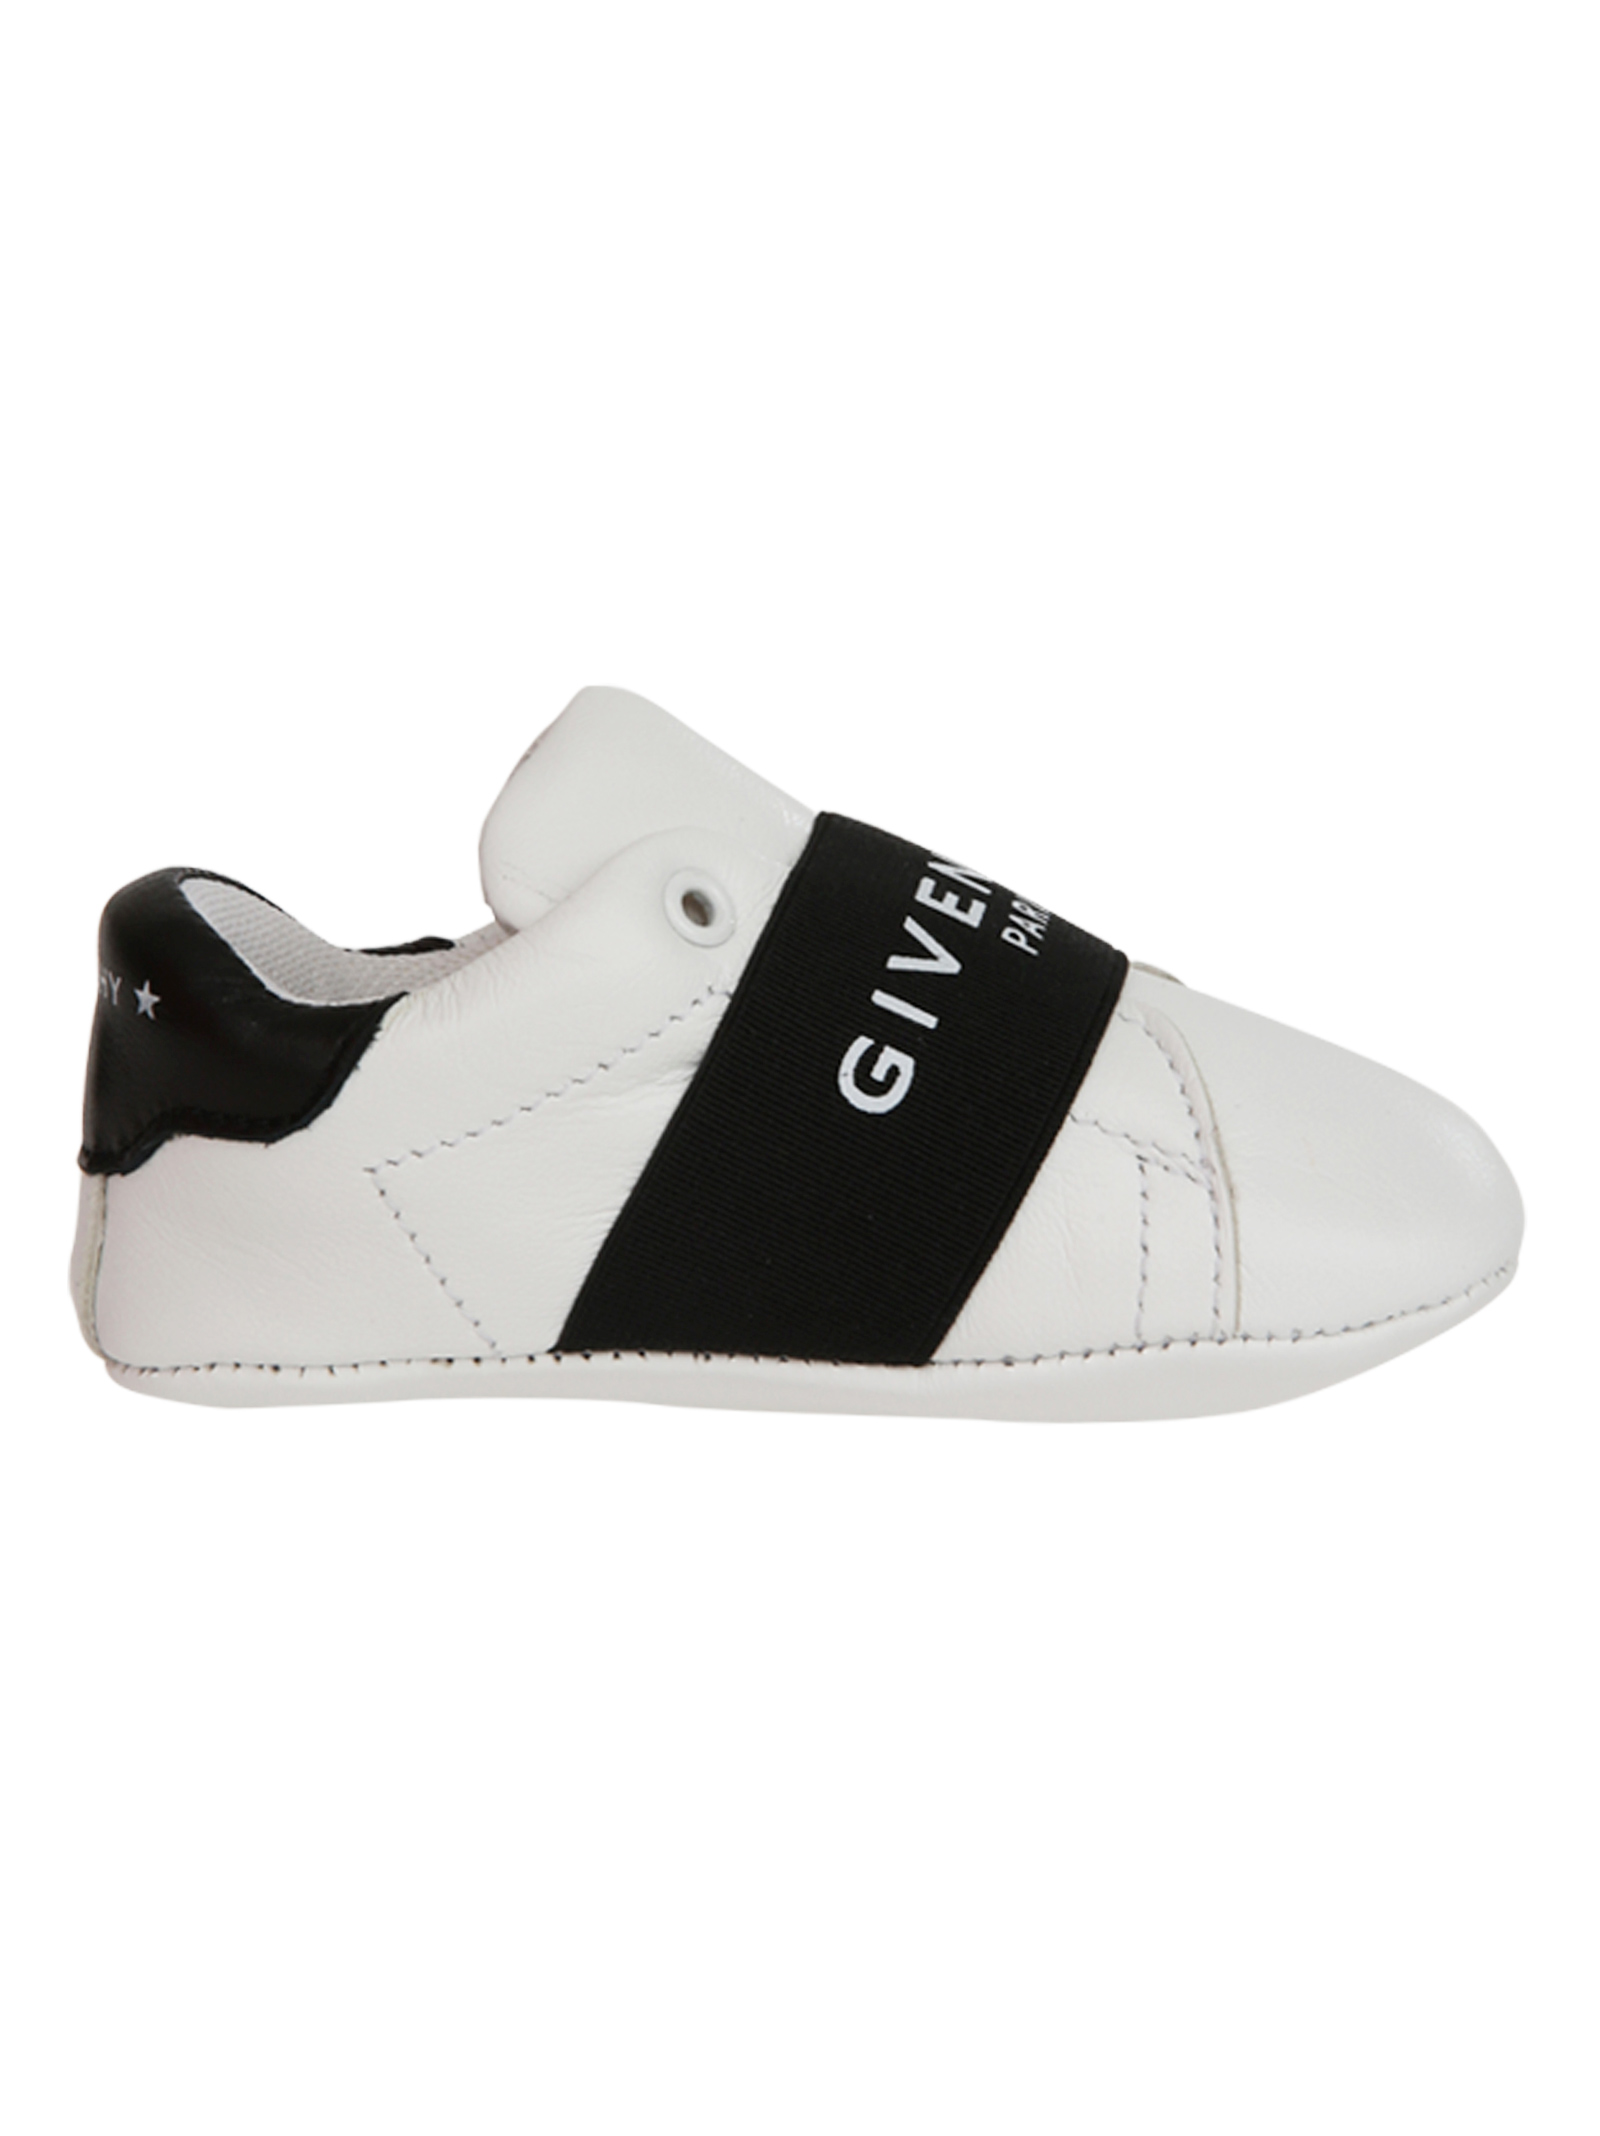 78e8fde39c78 Givenchy Kids Sneakers - GIVENCHY kids - Michele Franzese Moda